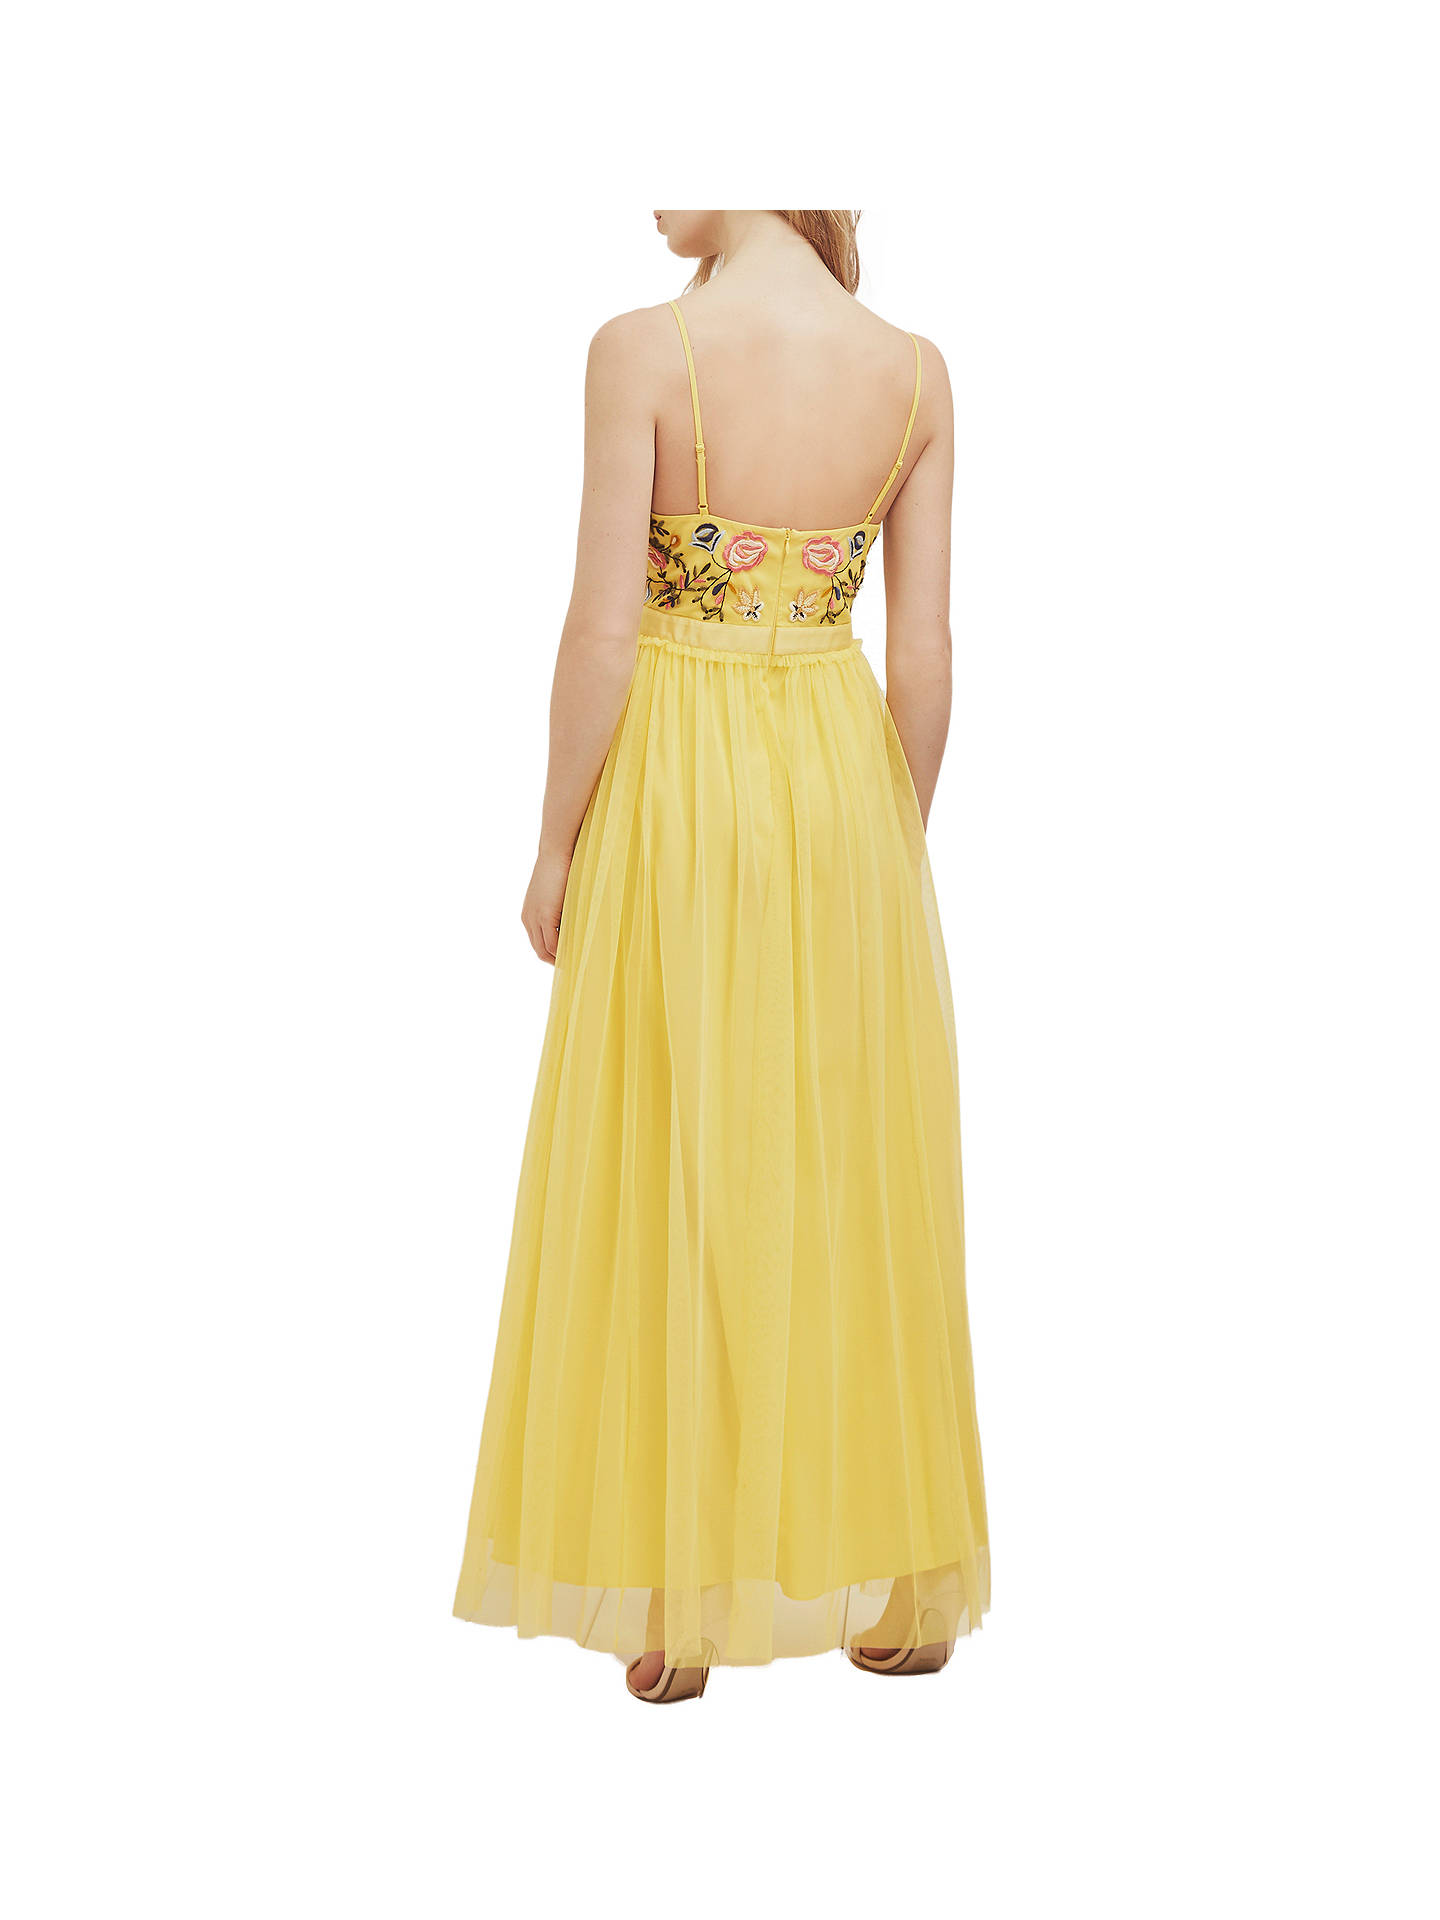 98ab0cc3be26 ... Buy French Connection Genoa Embroidered Maxi Dress